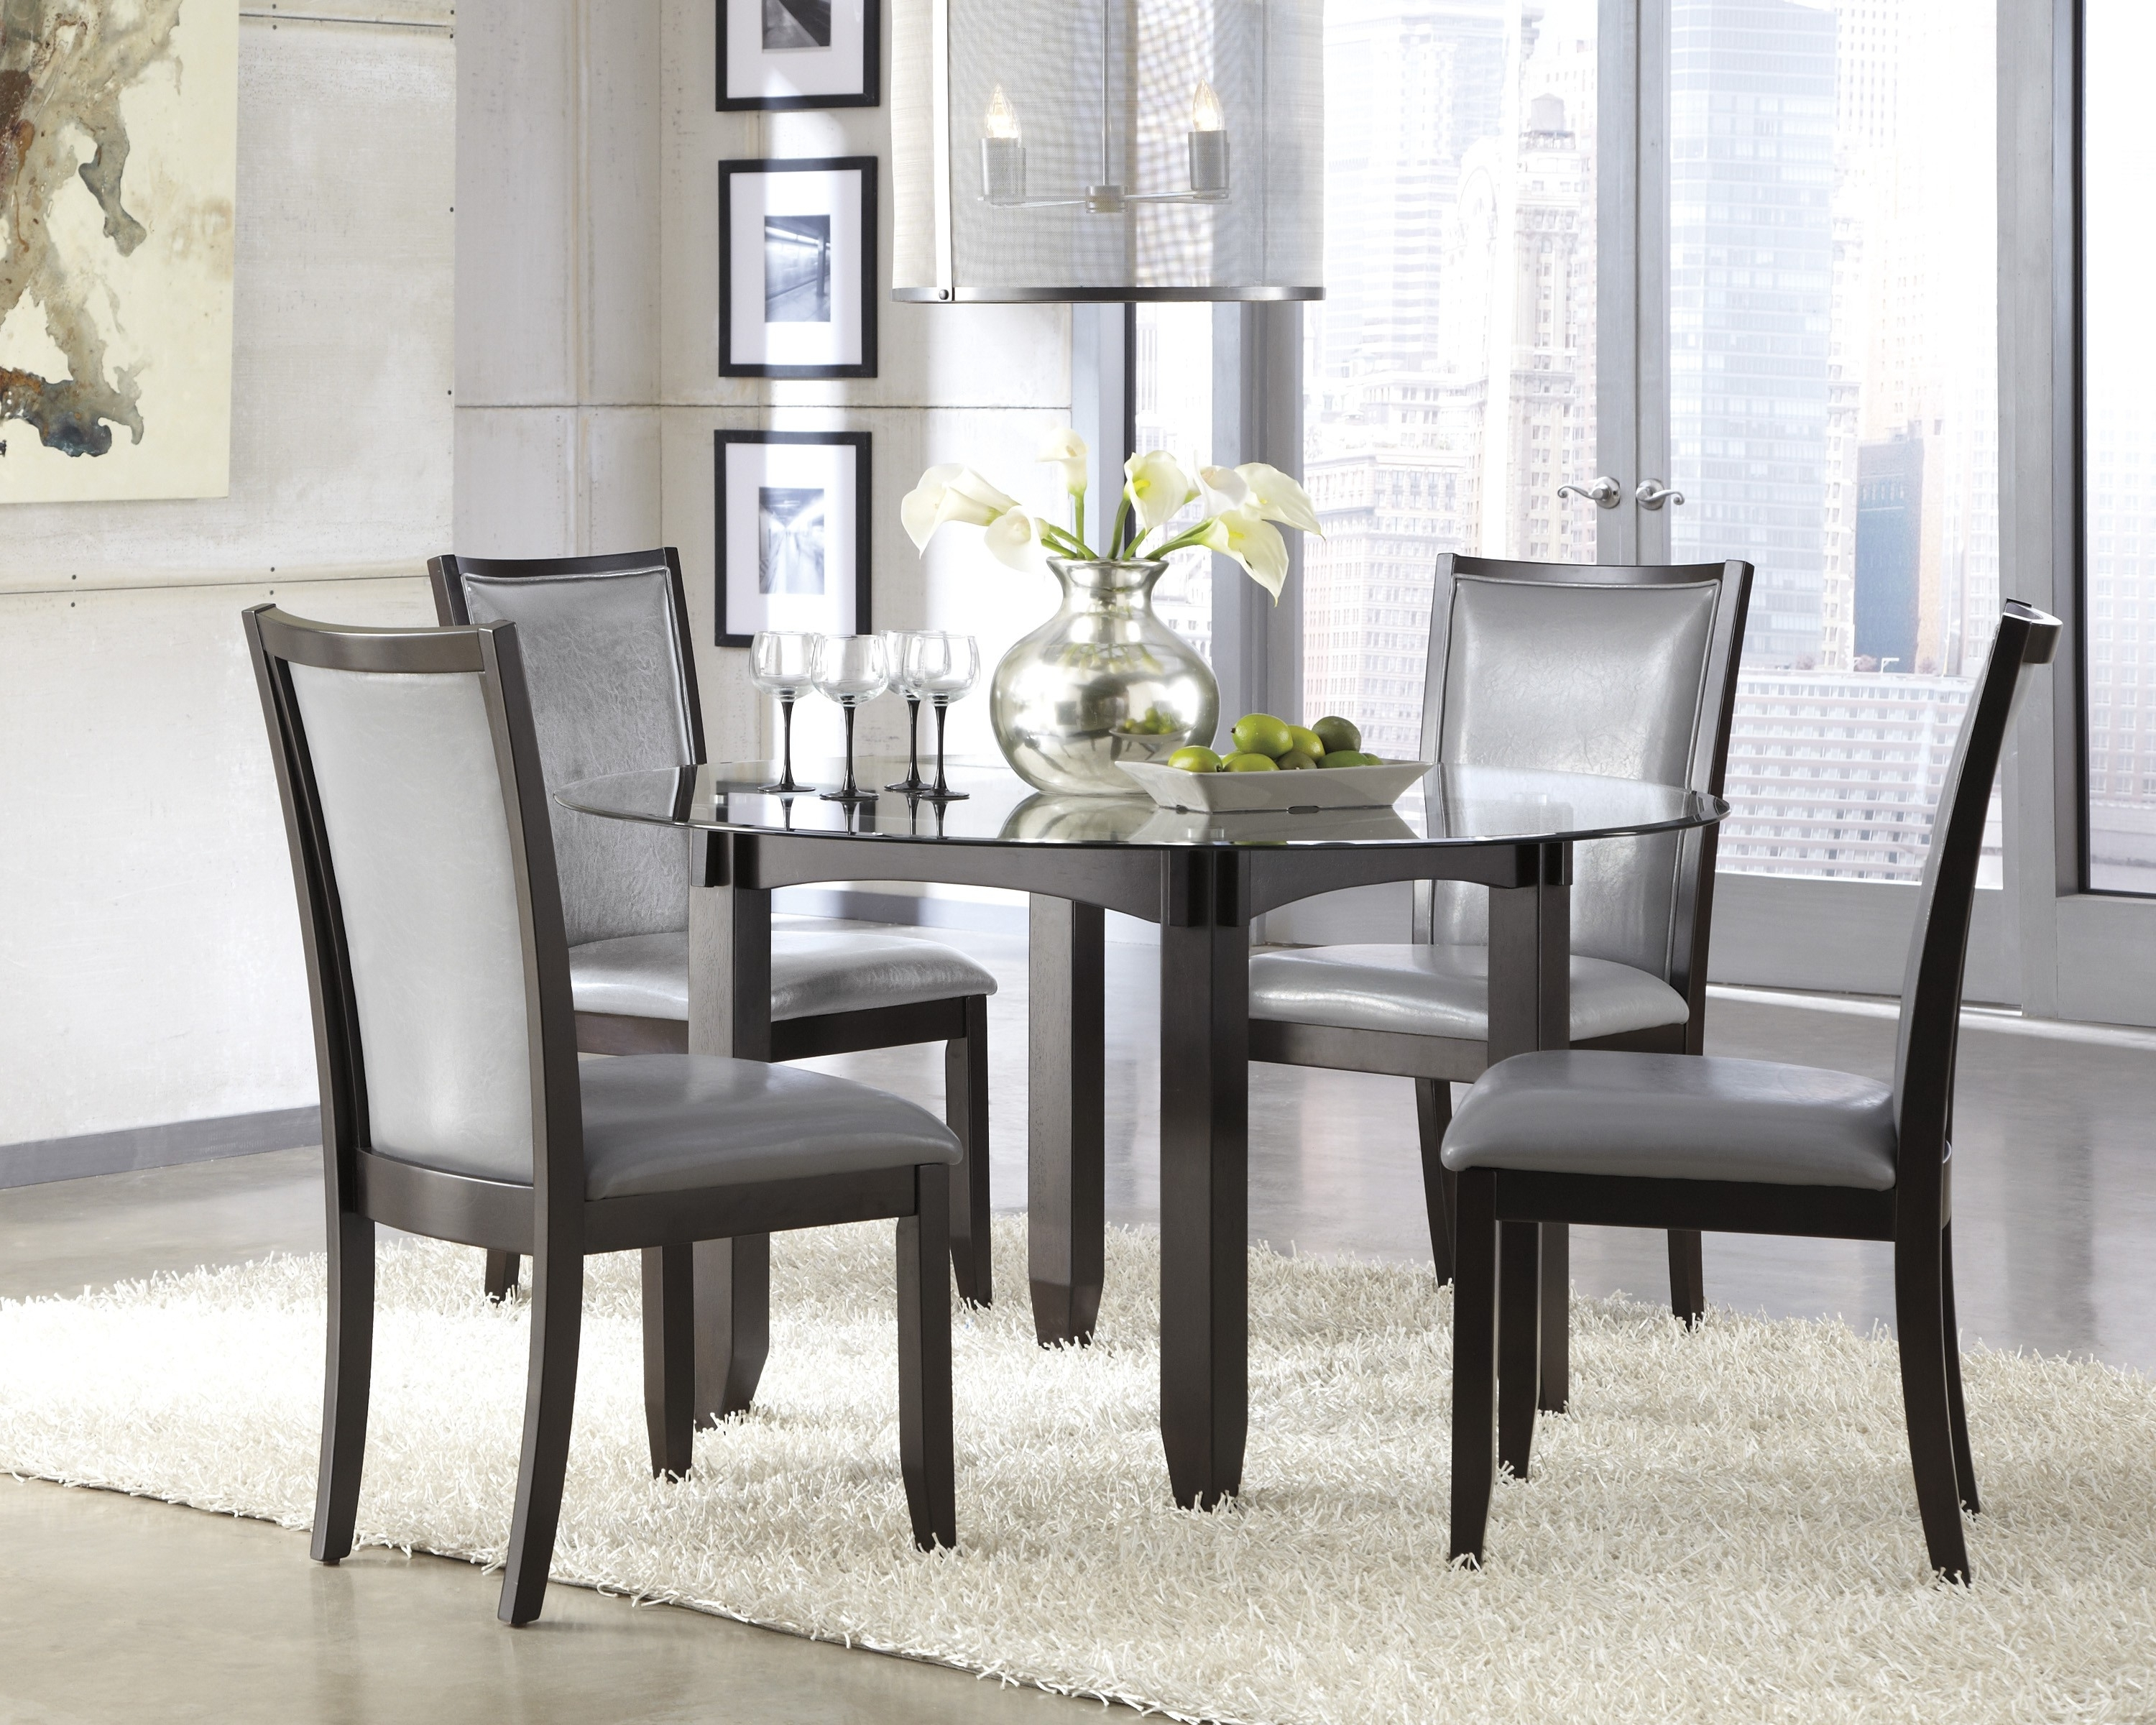 Dining Room Chairs In Popular 5 Round Black Dining Room Table And Chairs Furniture Ideas (Gallery 23 of 25)